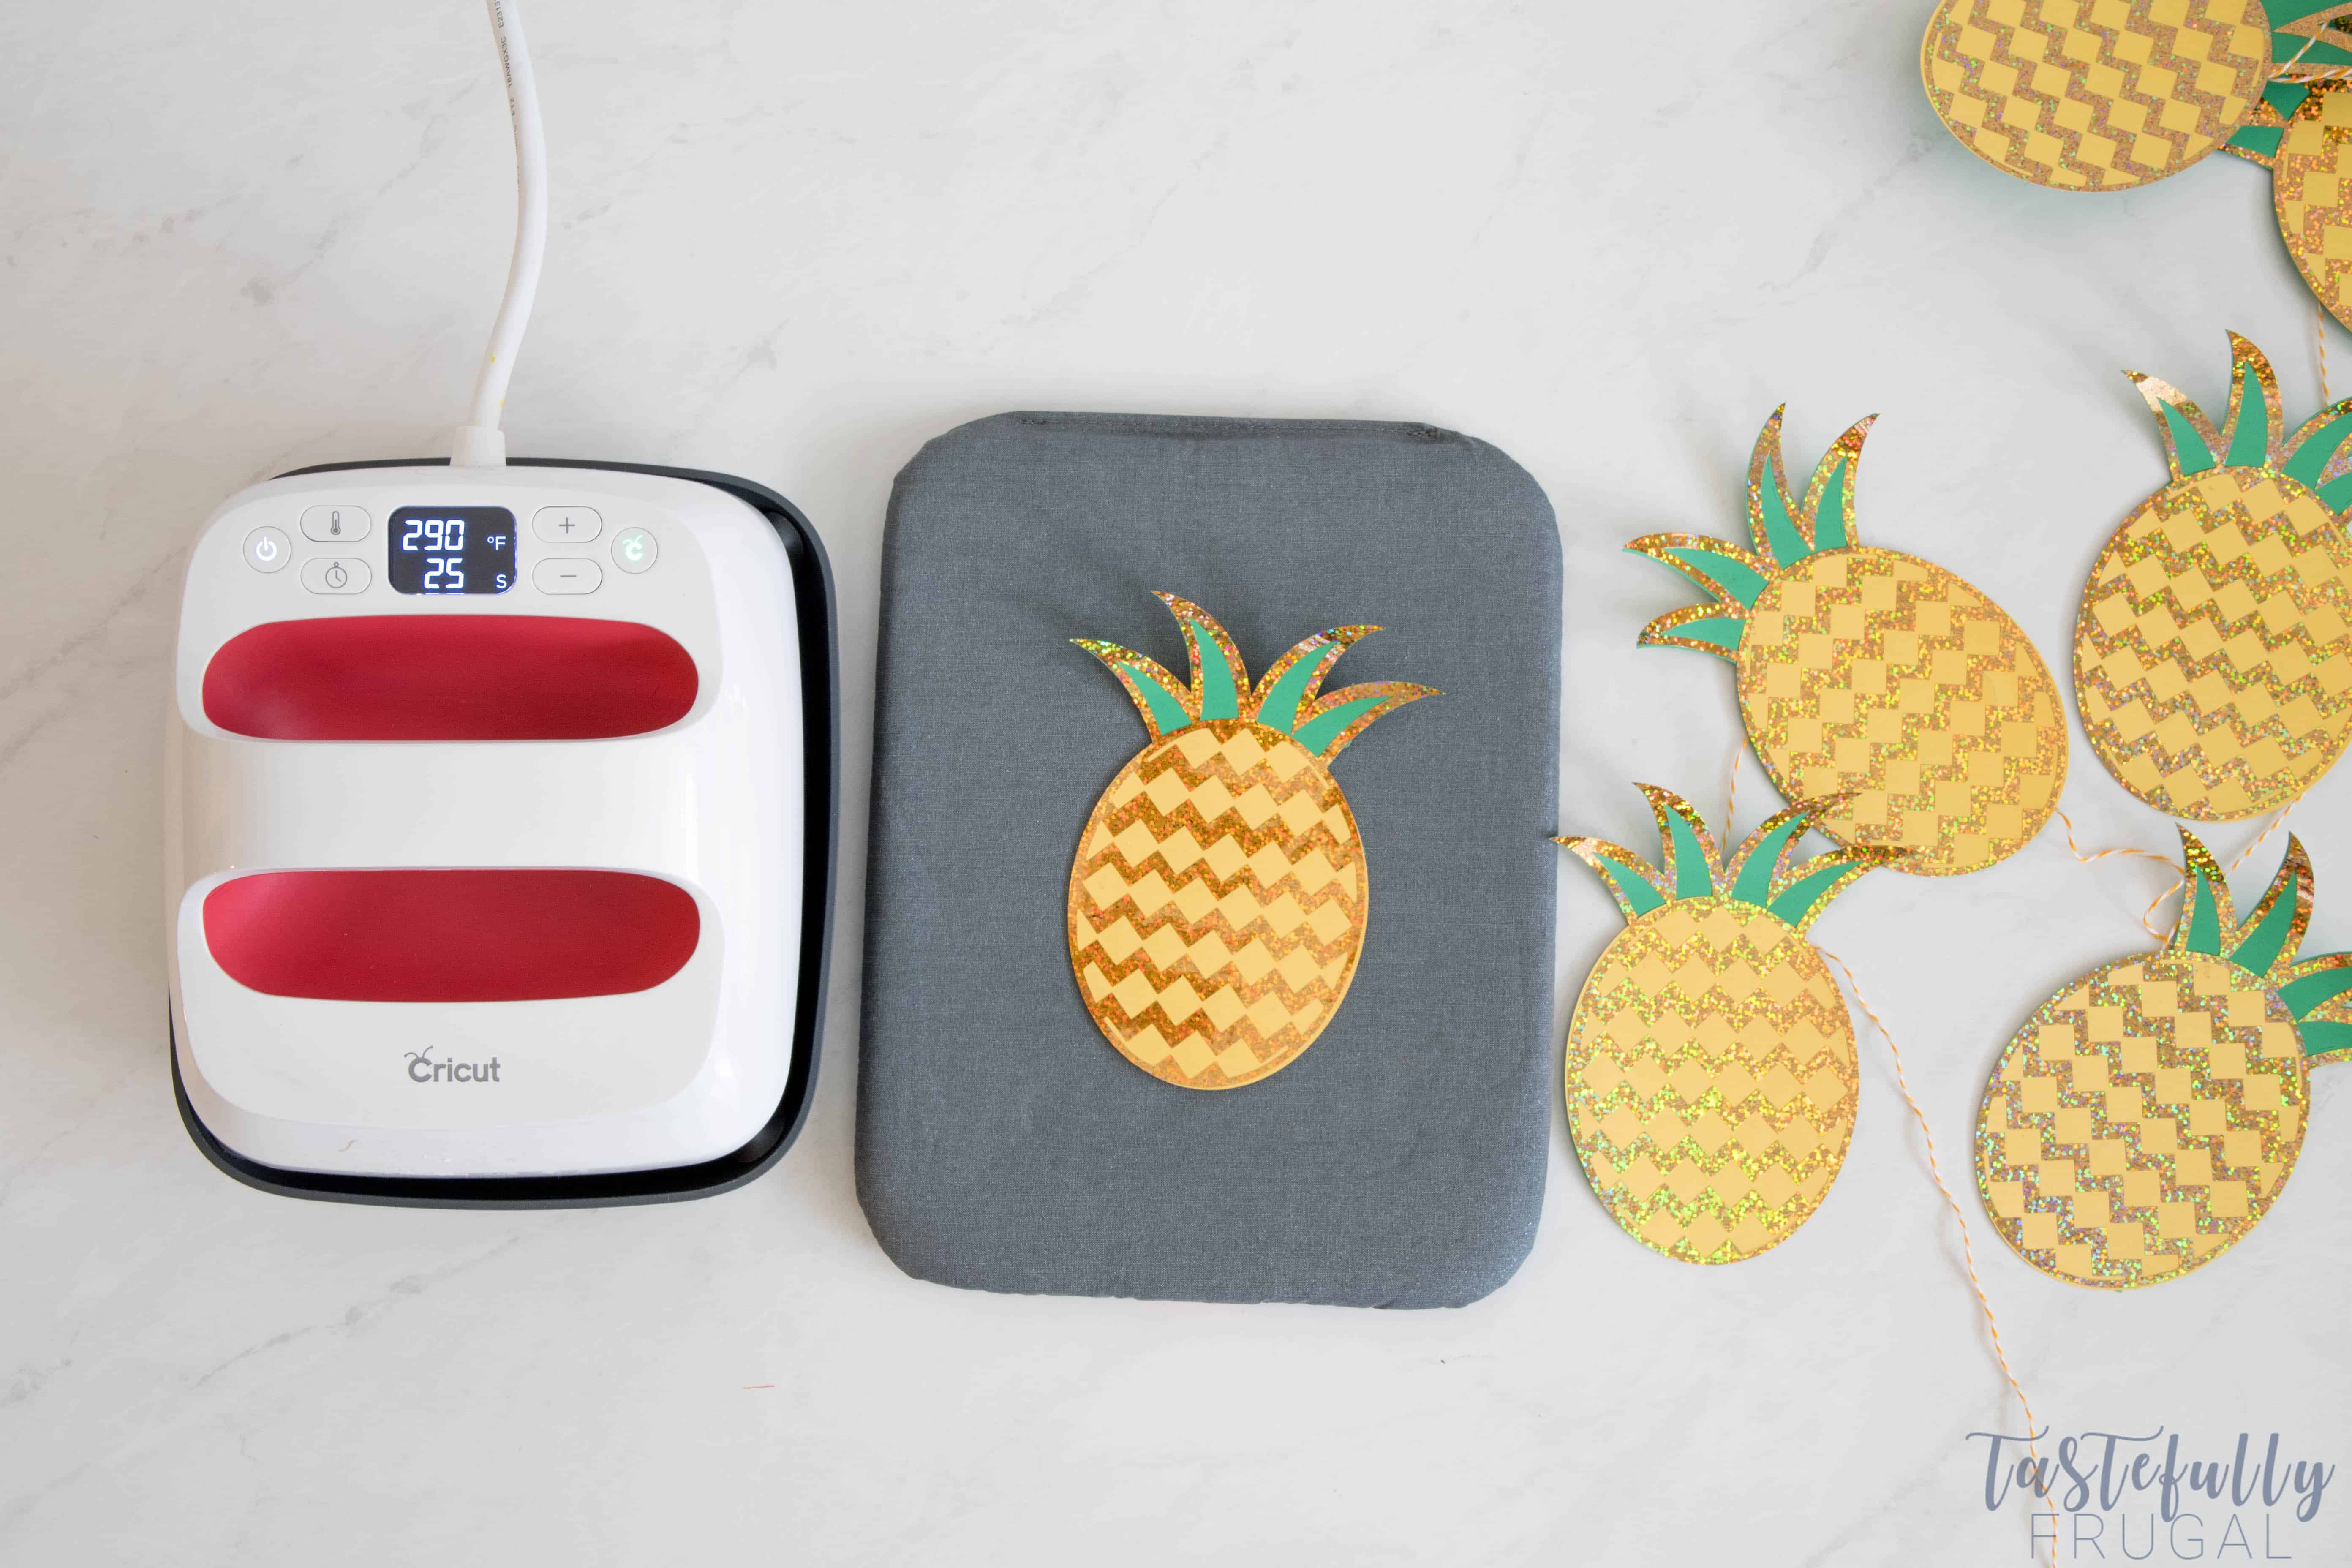 Creating a Pineapple Party with Sparkle is easy with the Cricut Maker #ad #Cricut #CricutMade